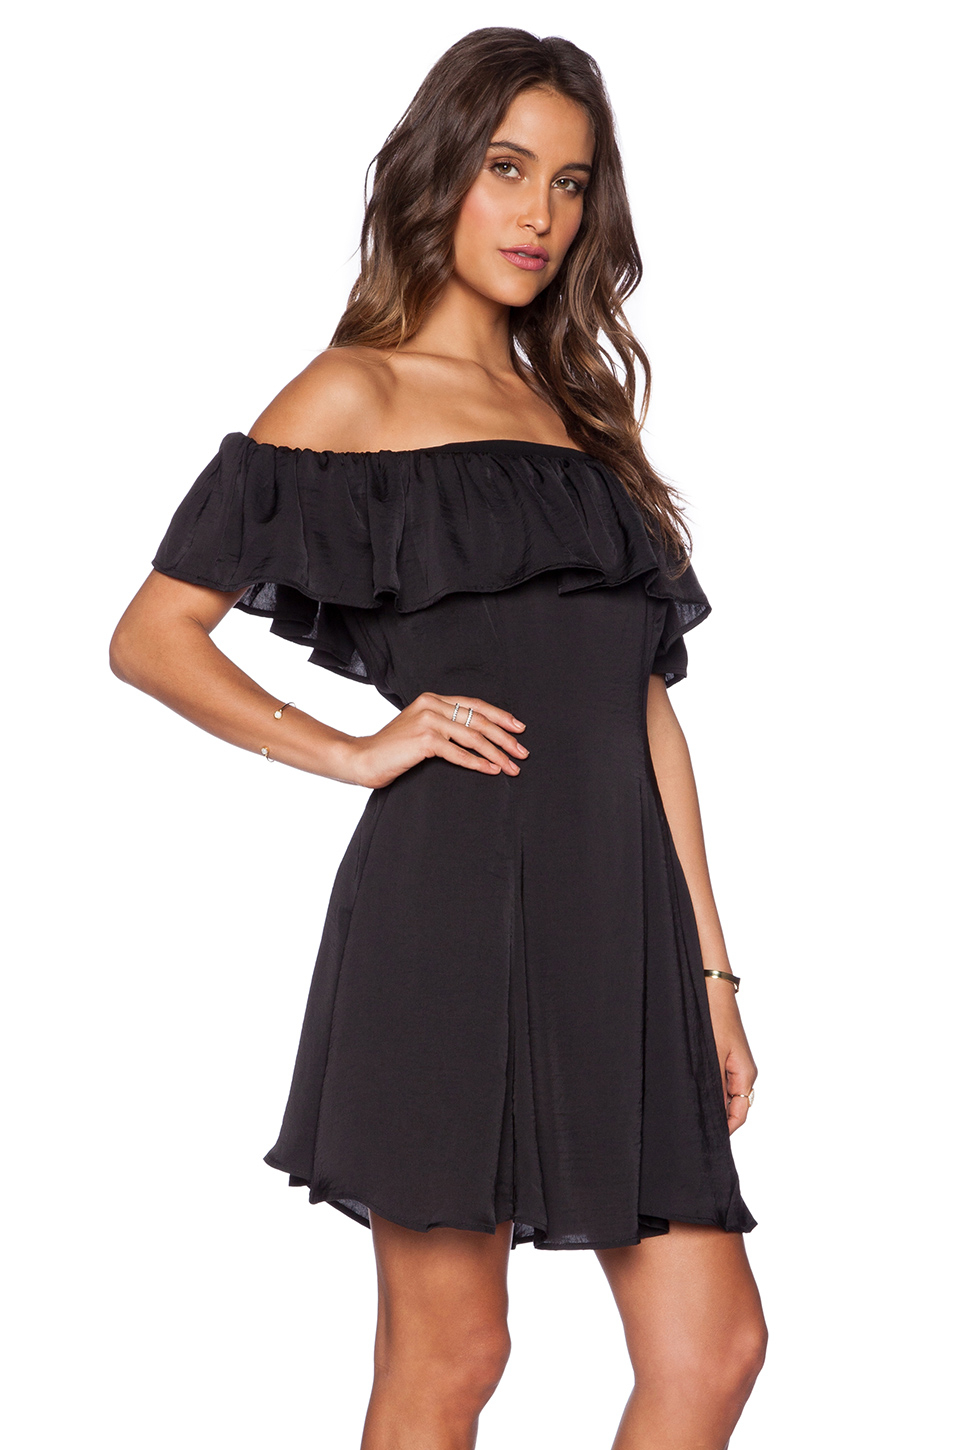 Capulet Spanish Shoulderless Mini Dress In Black Lyst